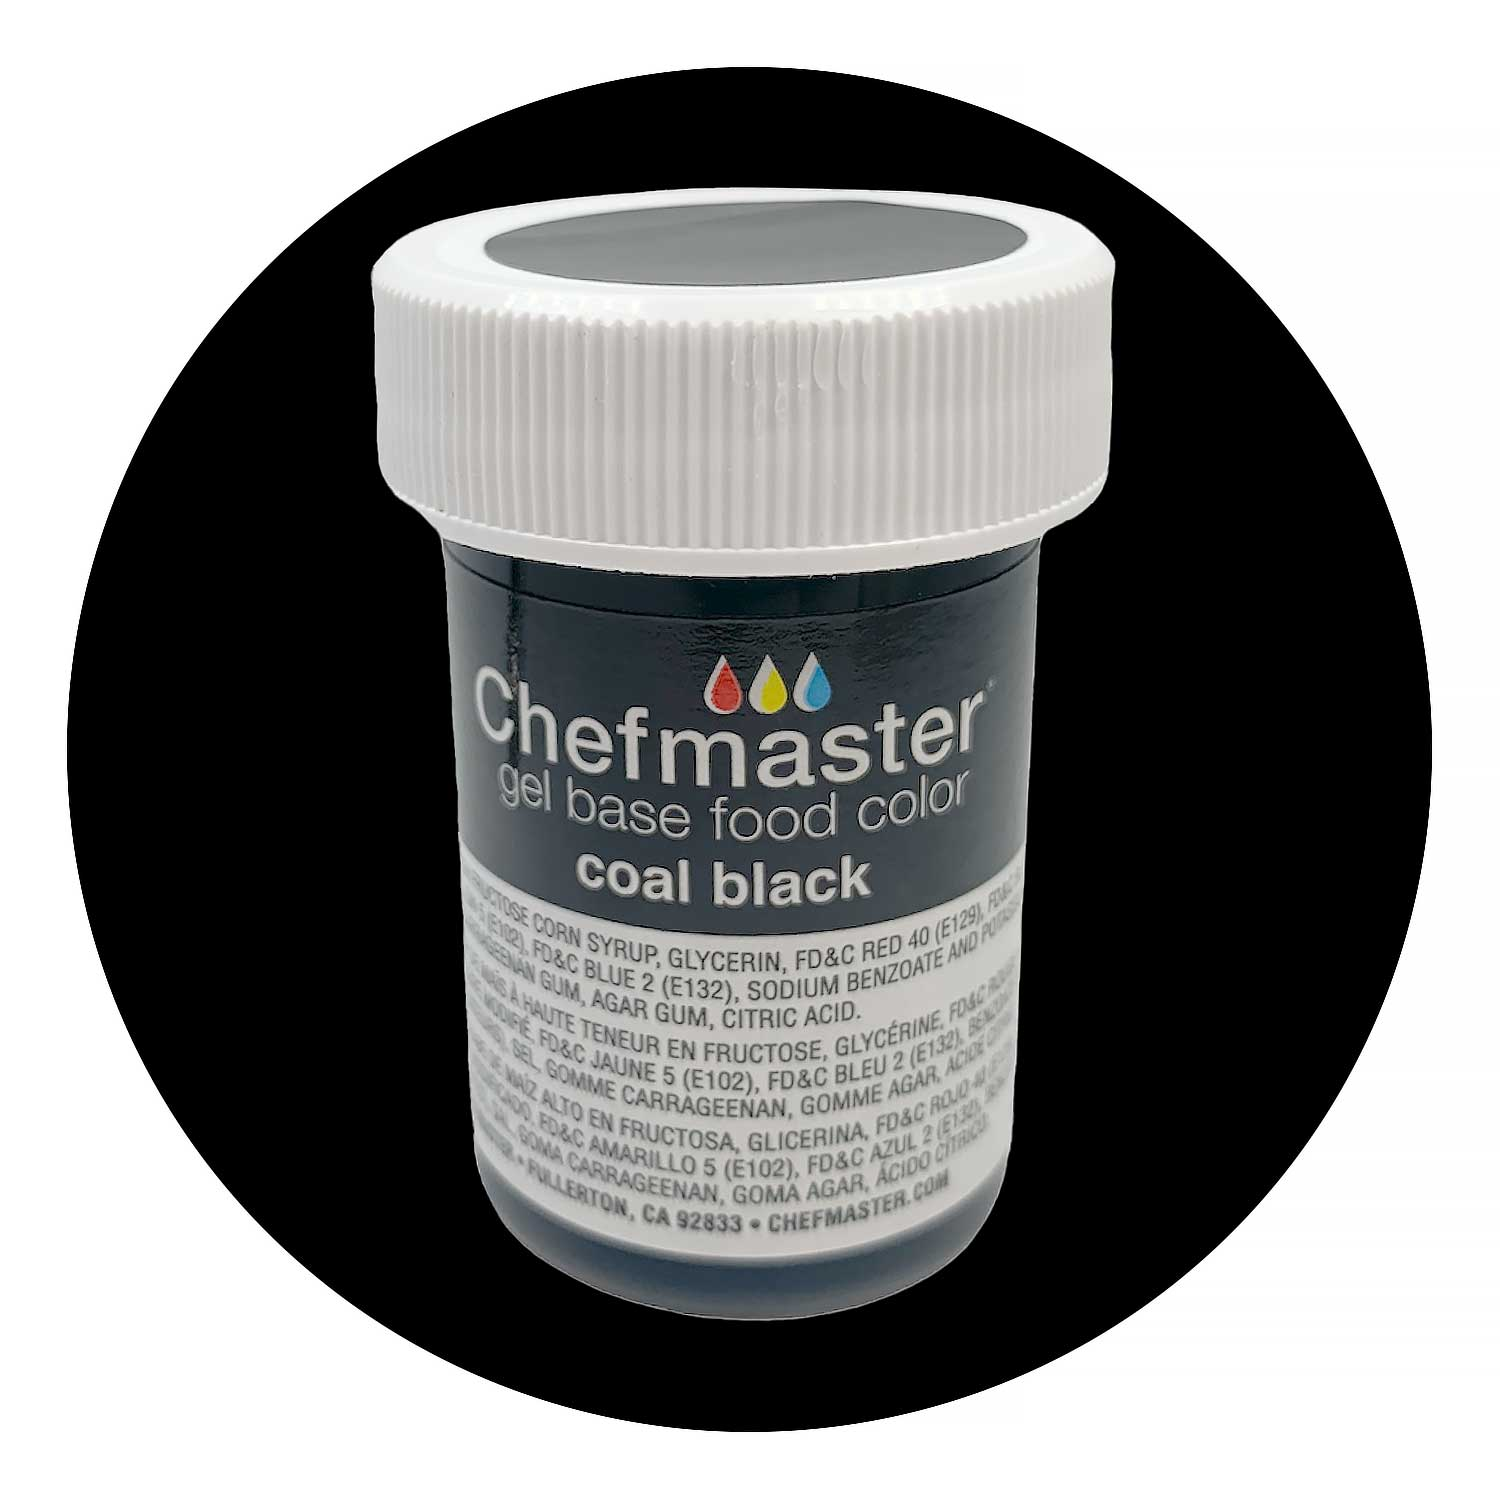 Coal Black Chefmaster Food Color Gel (Old Item # 41-2339) - CFM ...